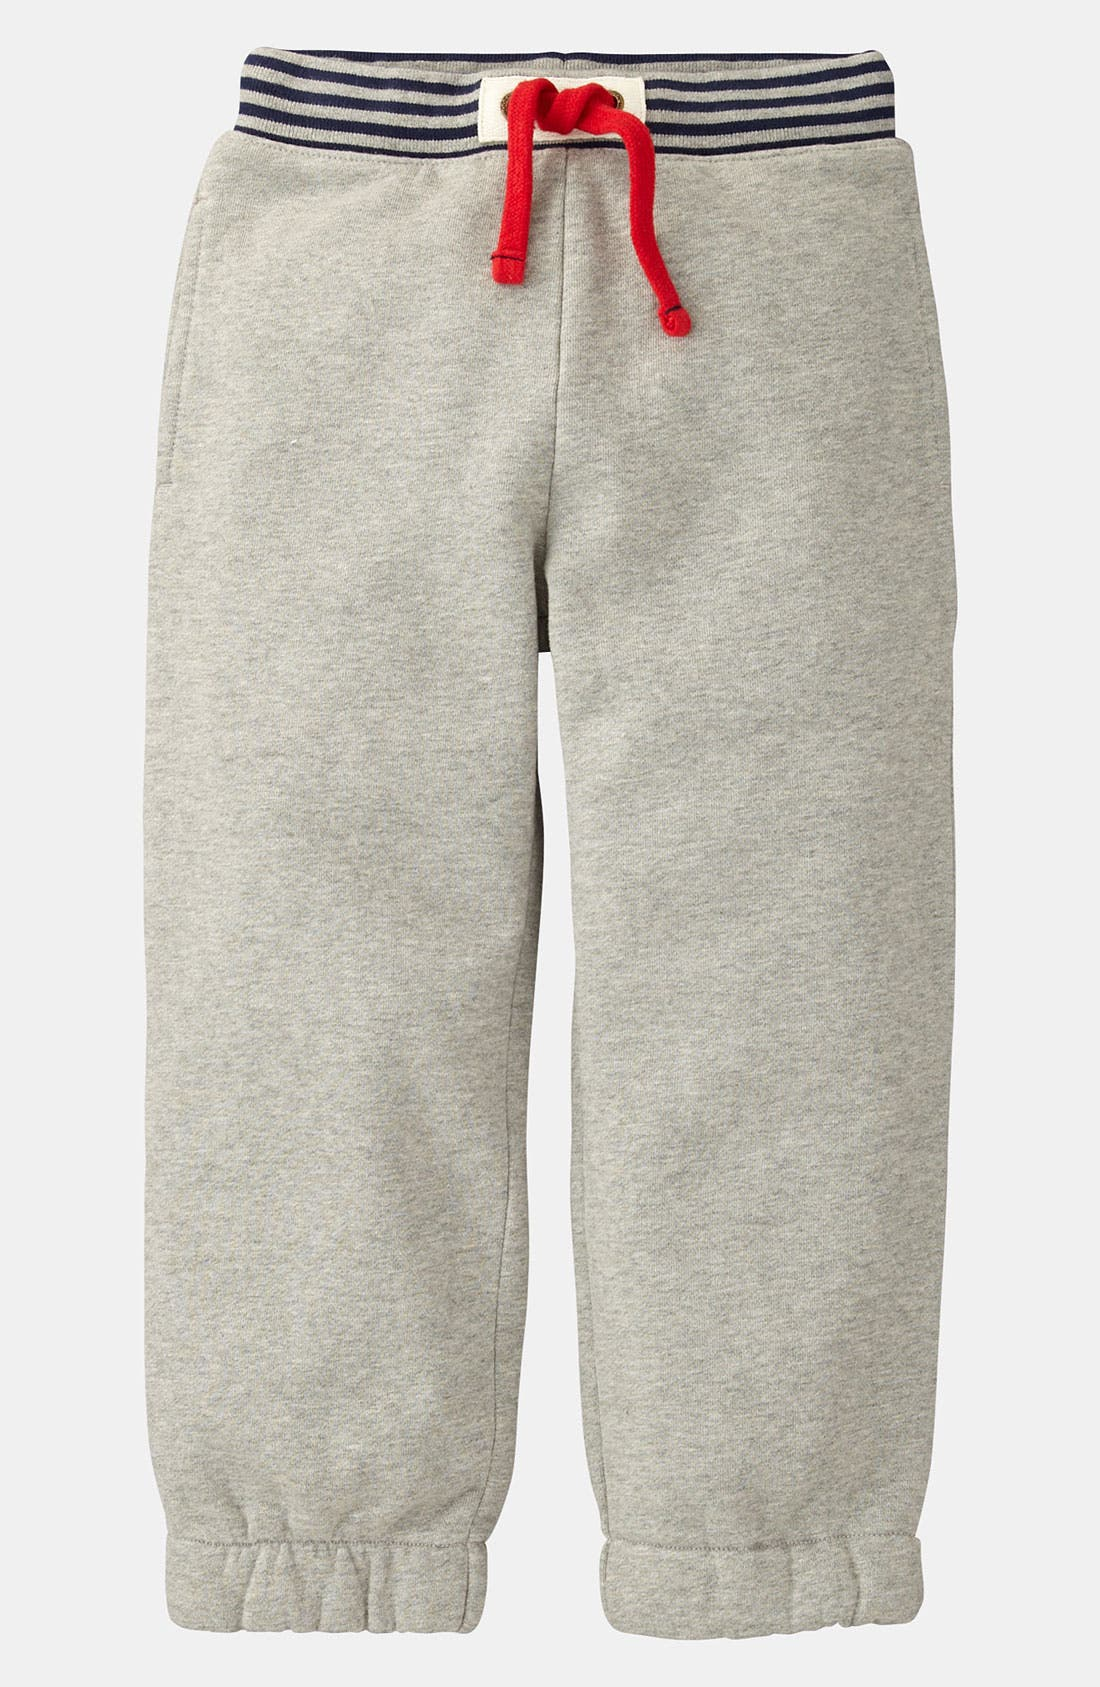 Alternate Image 1 Selected - Mini Boden 'Track' Pants (Toddler)